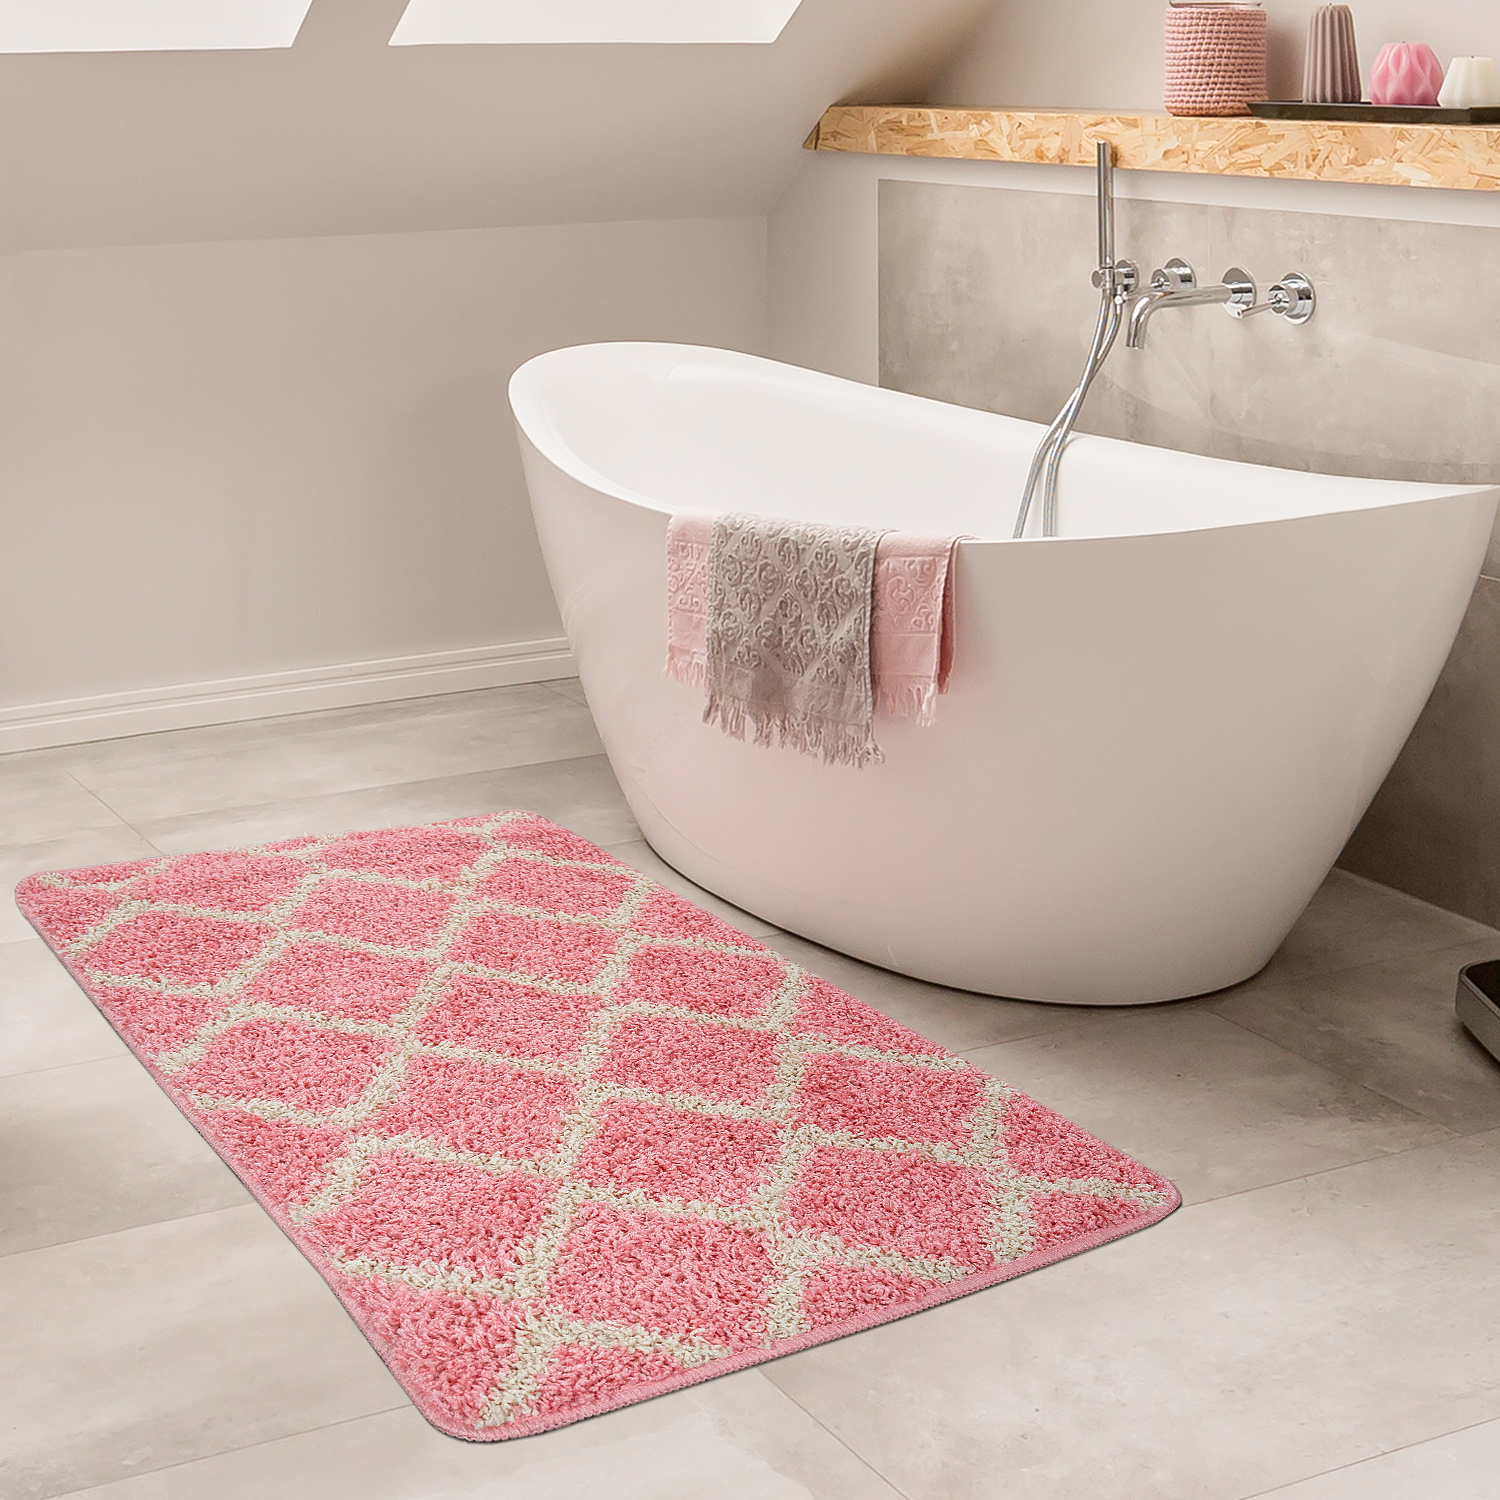 Modern Bathmat With Diamond Design Deep Pile Bathroom Mat In Cream Black